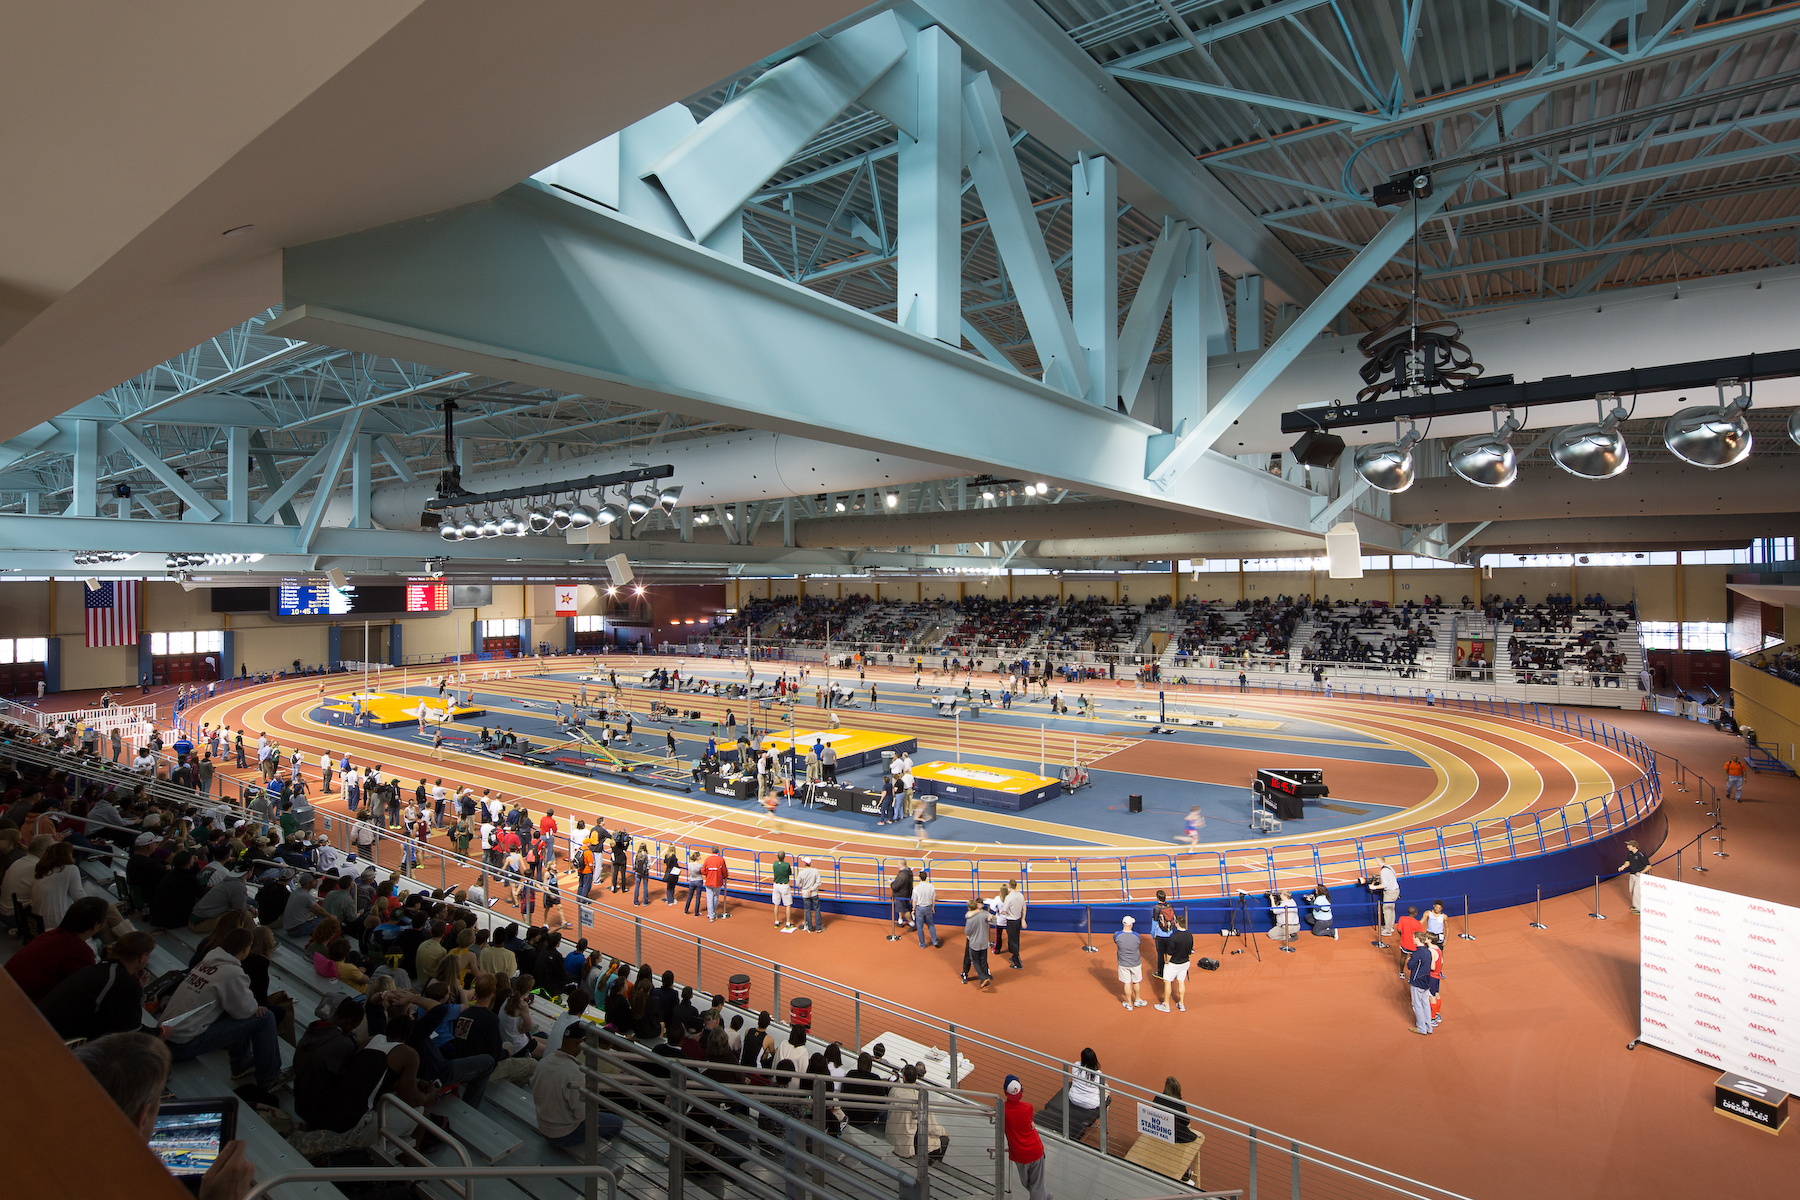 birmingham crossplex track meet images